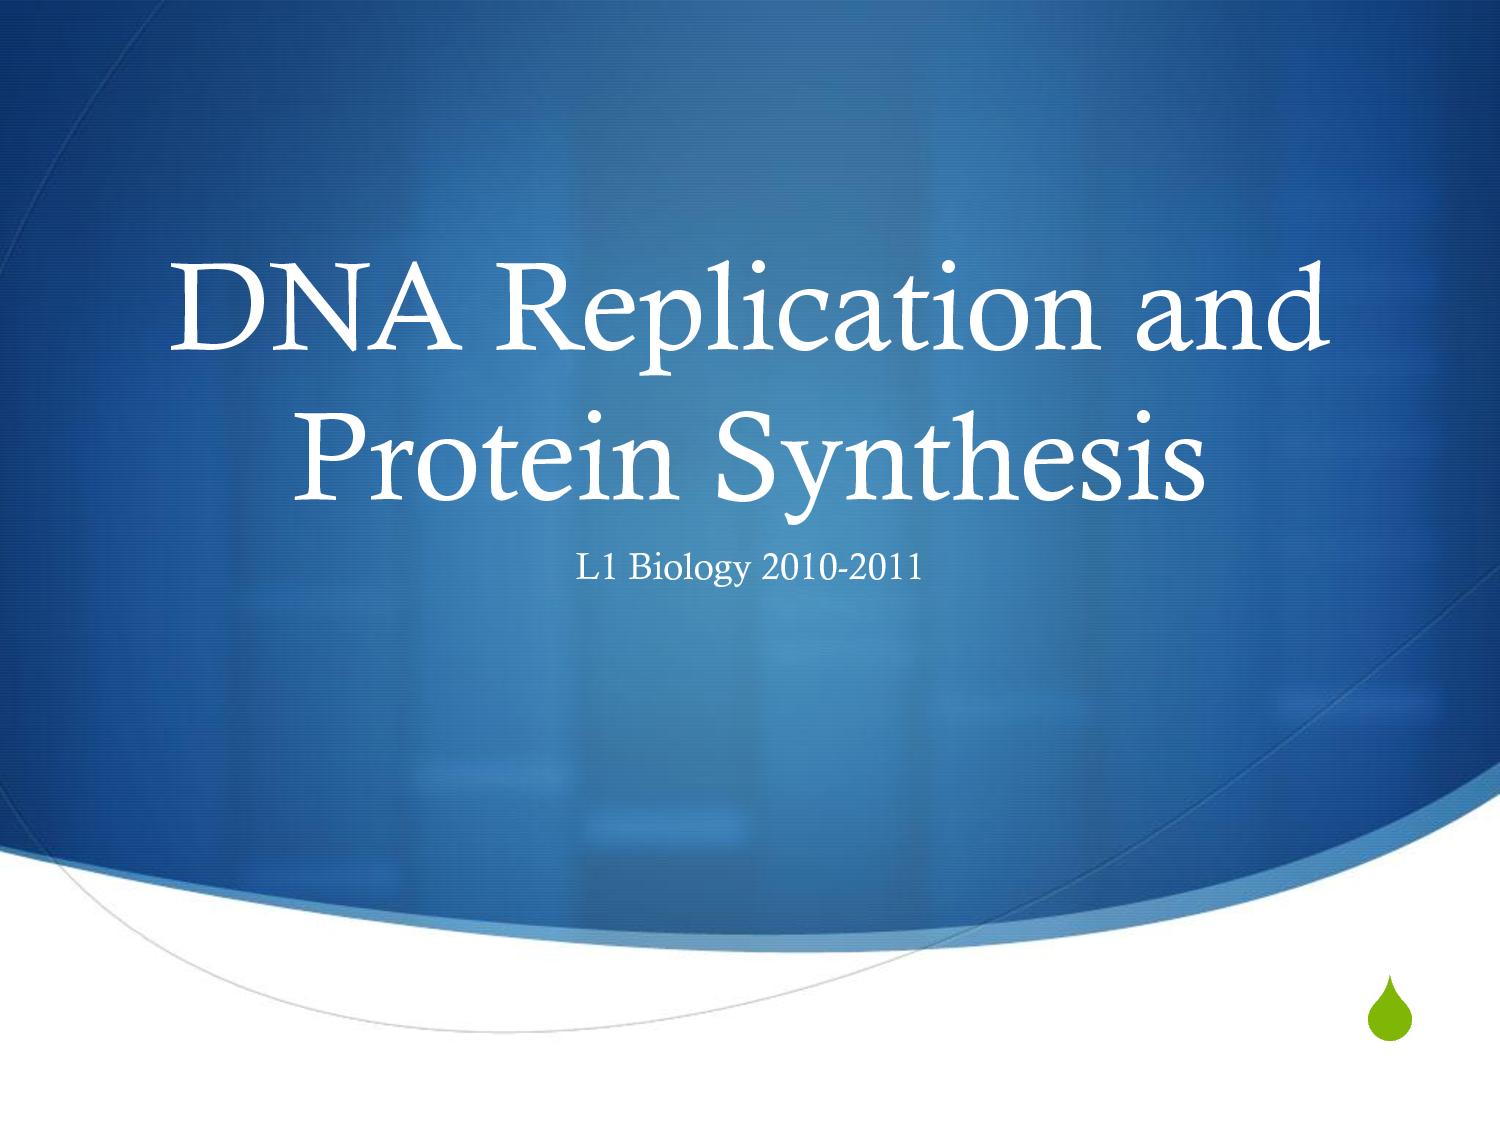 Protein Synthesis and DNA Replication